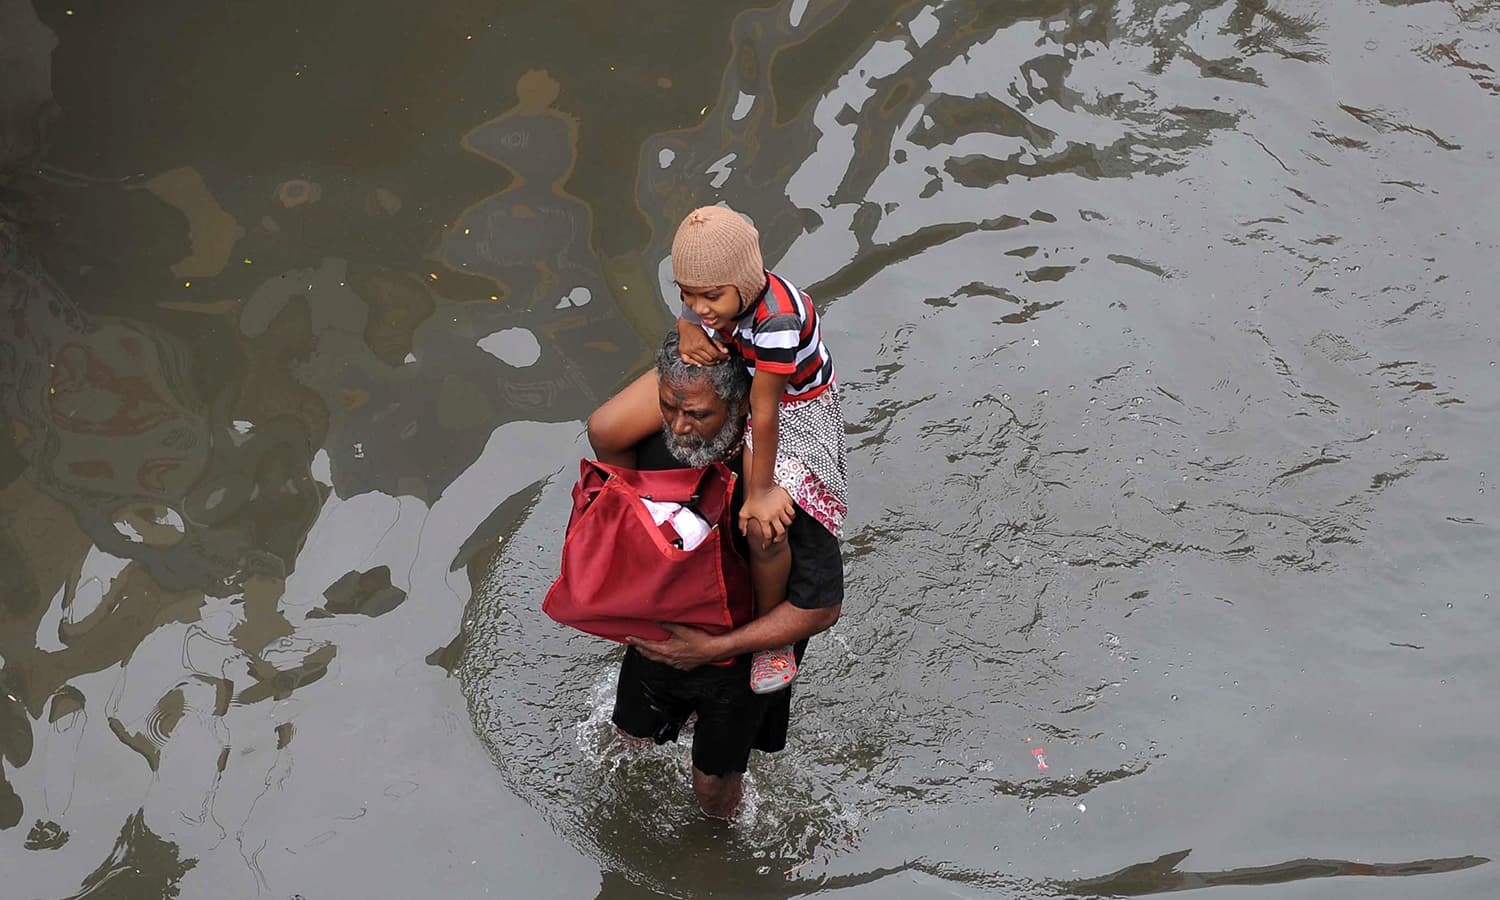 An elderly Indian man carries a child as he walks through floodwaters in Chennai on December 3, 2015. — AFP